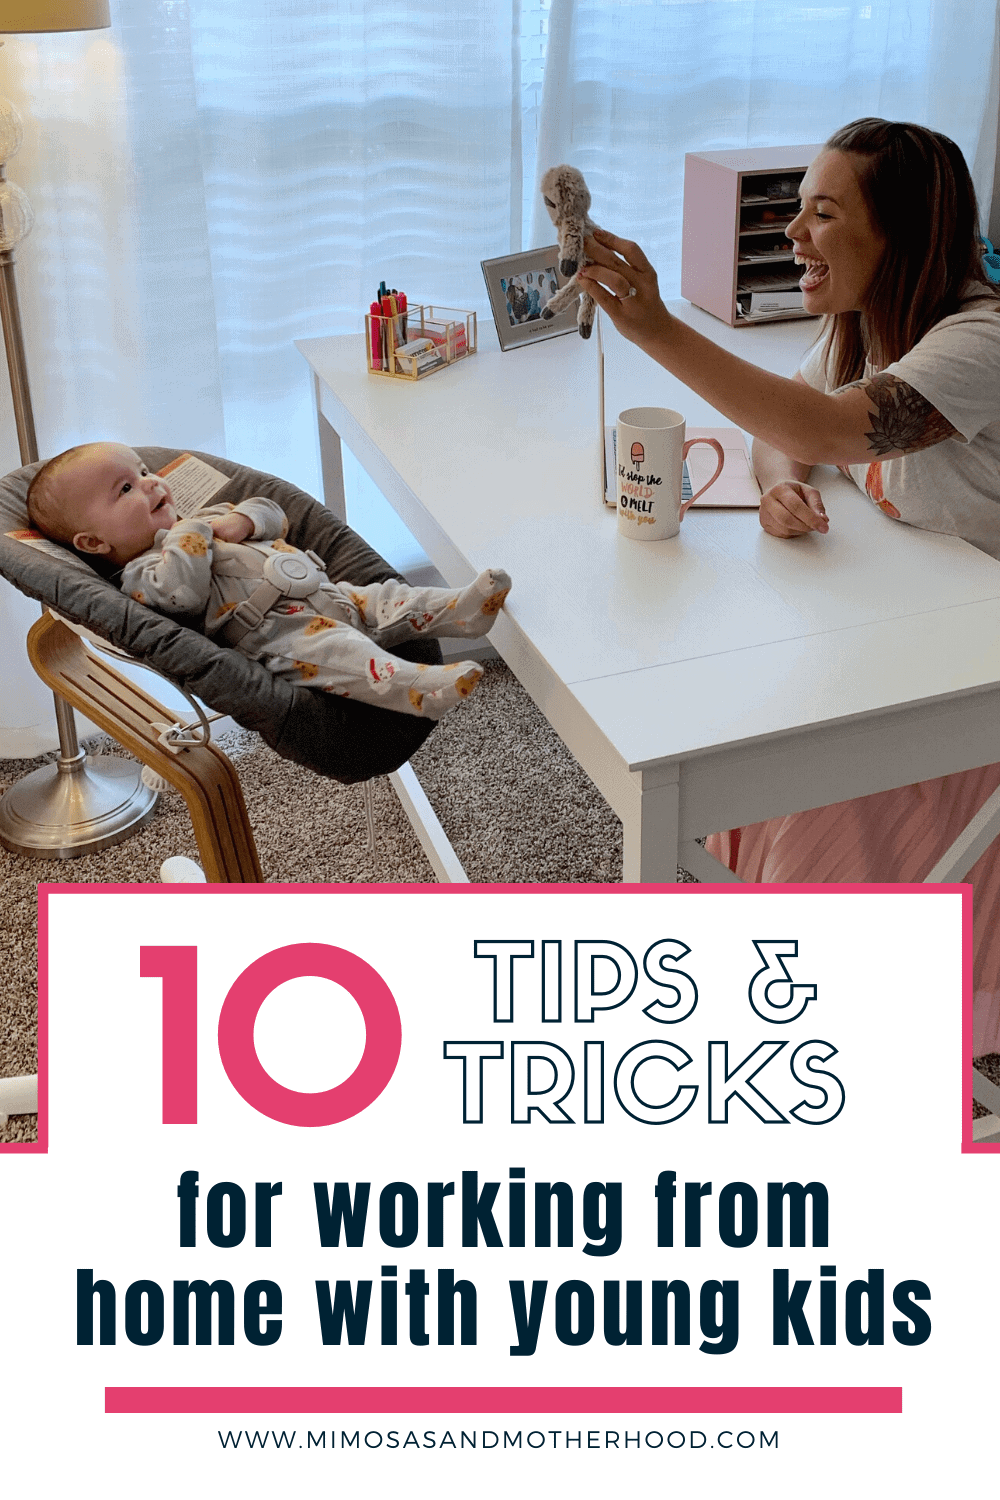 10 Tips & Tricks for Working From Home with Young Kids (2)